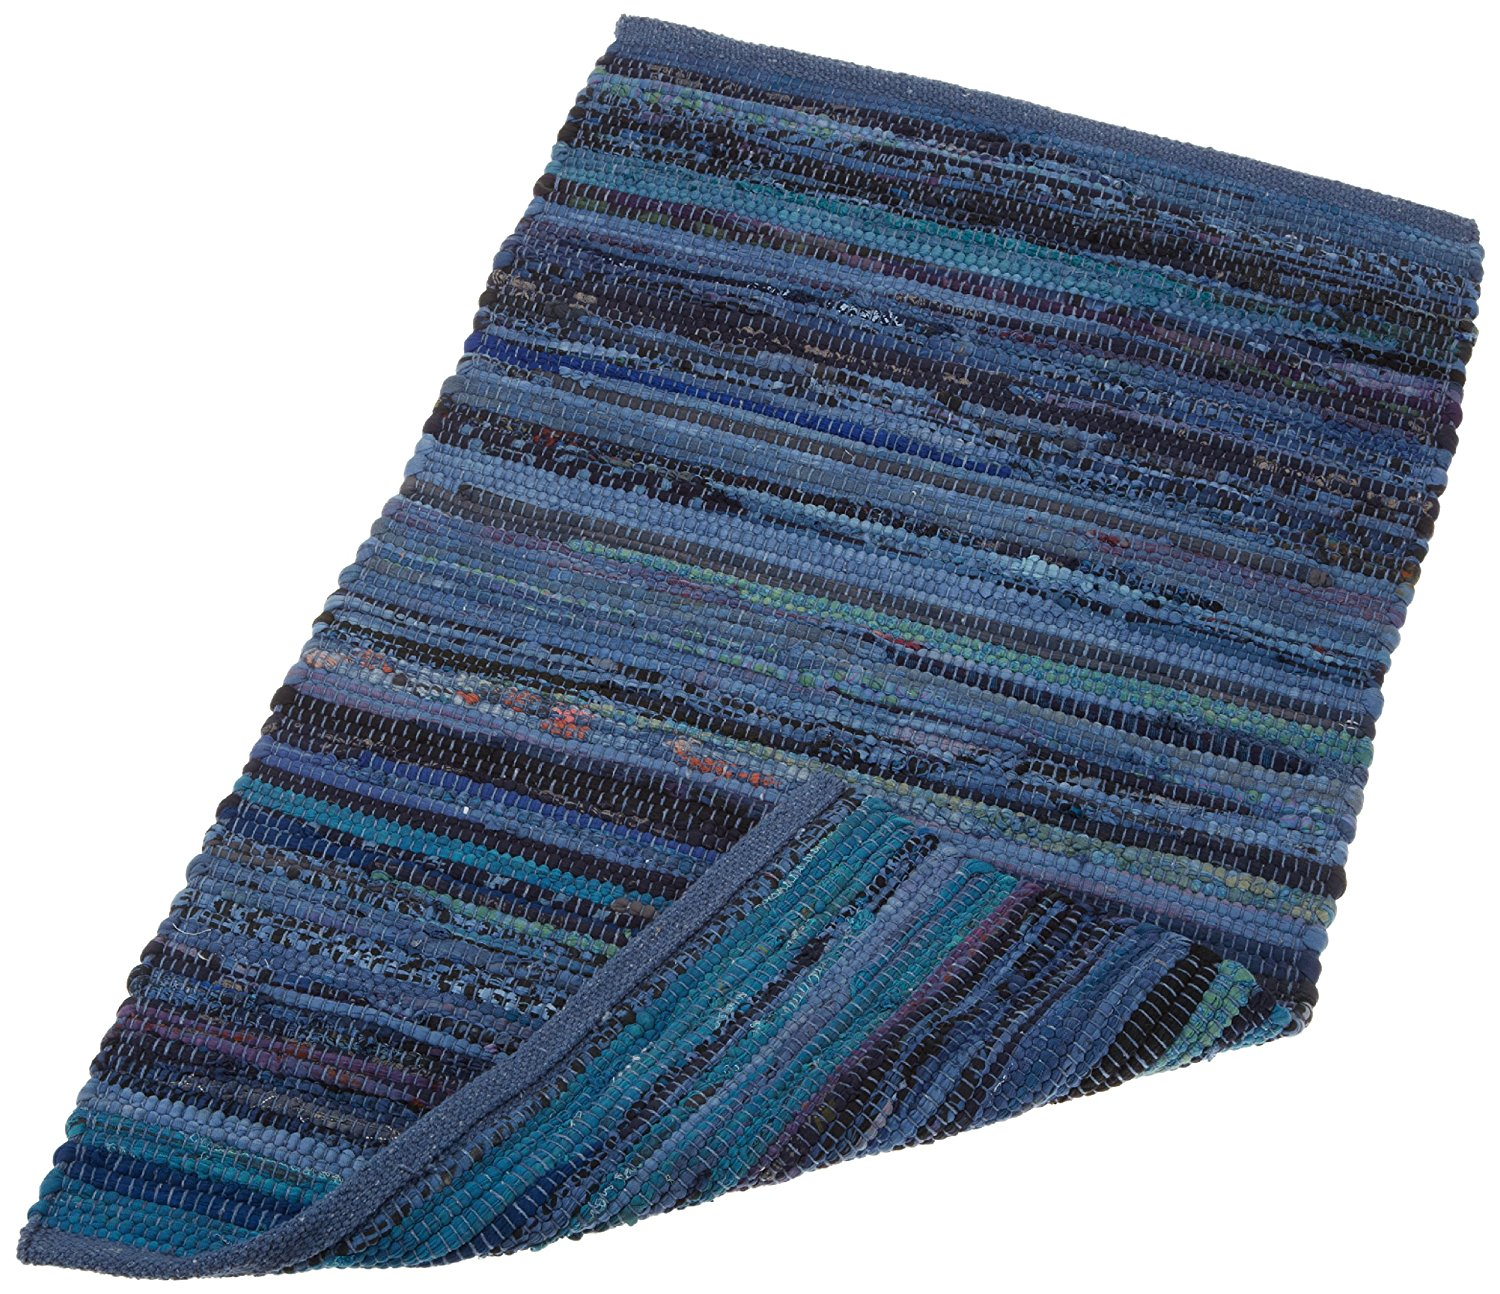 Details about DII Home Essentials Rag Rug for Kitchen, Bathroom, Entry Way,  Laundry Room and B